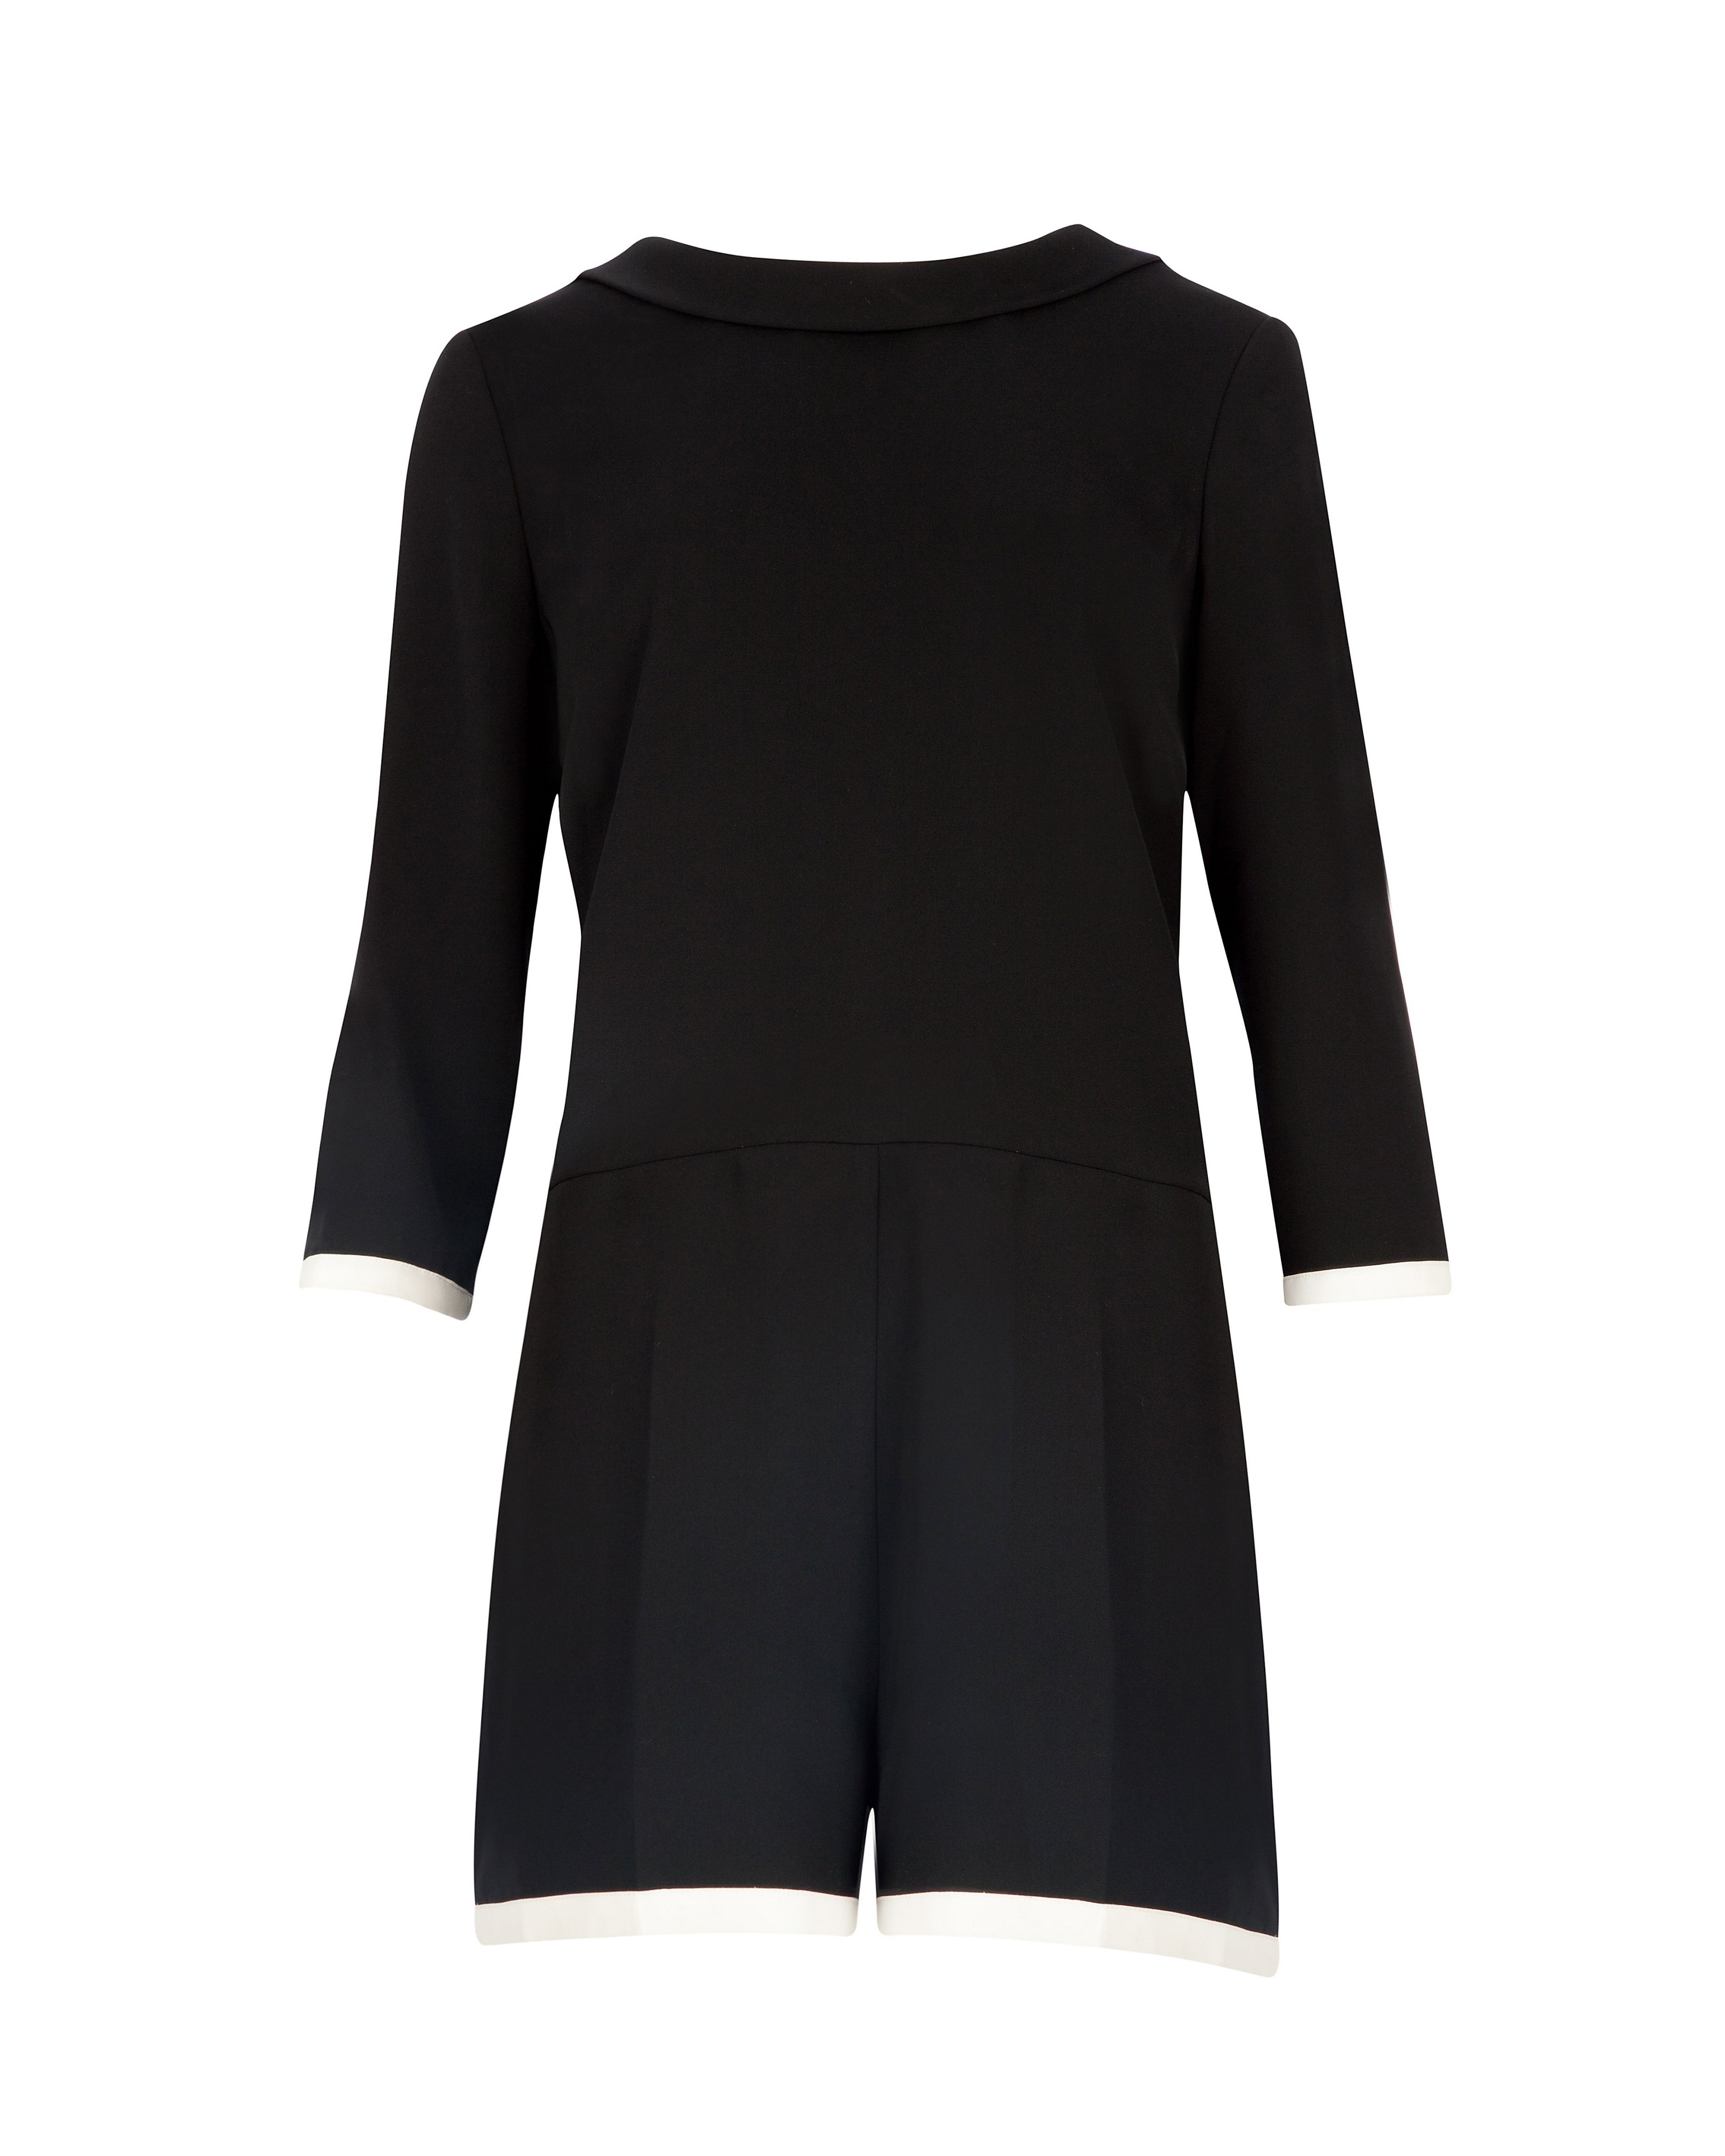 Mertica long sleeve playsuit